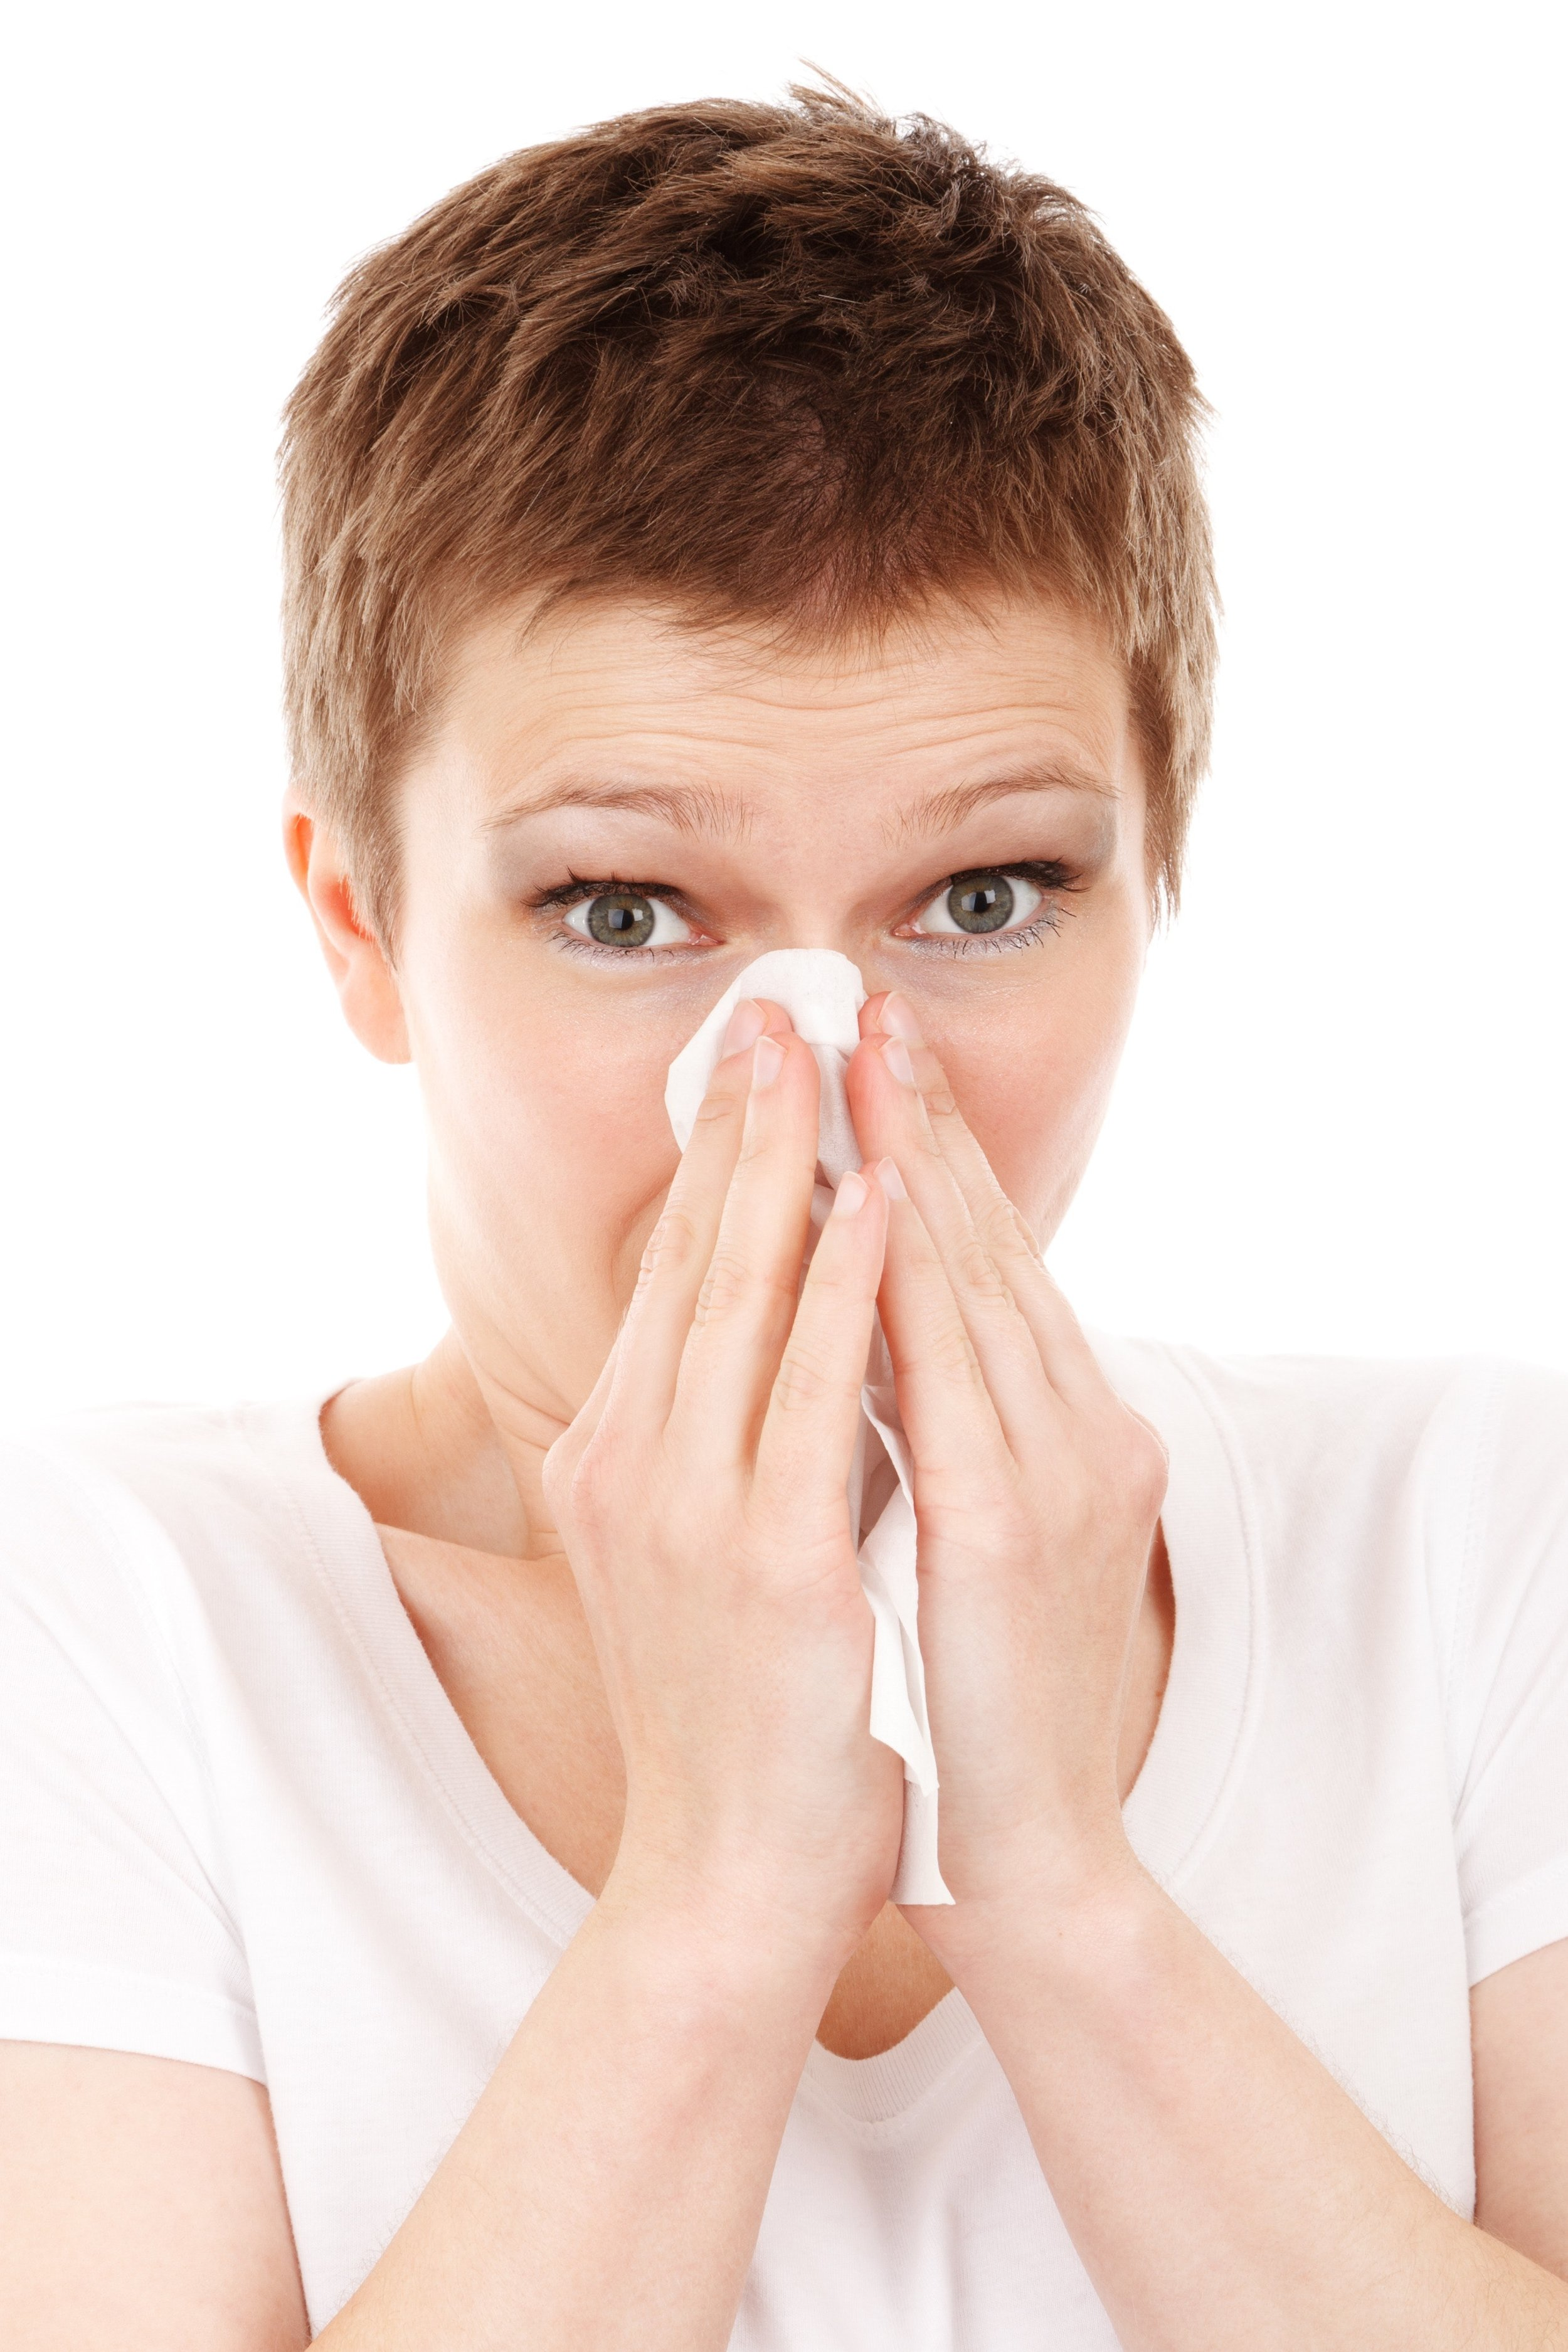 I THINK I HAVE THE FLU, WHAT SHOULD I DO? - The most common forms of Influenza are A and B. The virus can spread via droplets in the air such as when someone talks, sneezes, coughs, etc. These droplets can be in the air at work, home, WalMart, or pretty much anywhere that you go.Symptoms usually appear within 1–2 days or exposure. Influenza is a virus and usually resolves on its own with symptom management; however, people with a weakened/low immune system should be evaluated for further complications such as pneumonia or even death. The group of people to watch closely are commonly people over the age of 65, pregnant women, young children, and people with chronic diseases such as heart disease, diabetes, and lung disease. Symptoms that are often experienced are headaches, fatigue, muscle weakness/aches, rapid onset of fever, runny nose, upset stomach, nausea, cough, sore throat, and decreased appetite. These symptoms often subside within 7–10 days of exposure, with or without medical treatment unless the immune system is weak and then that time will vary per person.Drinking plenty of fluids and taking Tylenol/Ibuprofen for fever and/or body/muscle aches are highly encouraged initially. Antivirals can be prescribed to assist with symptom management. Antivirals can also be prescribed if there has been close/direct contact with someone that has Influenza.To avoid passing the germs that are related to Influenza, people are highly encouraged to wash their hands thoroughly and frequently, get the flu vaccine annually, cover a cough/sneeze with a tissue or your arm, frequently sanitize workstations, telephones, computer keyboards, etc. Flu vaccines do not completely prevent you from getting Influenza, but it can decrease your chance of getting it by at least 30%.Flu shots are still available for ages 4 and up at our clinic. Come by or call to schedule your appointment for one today. Walk-ins are welcomed.